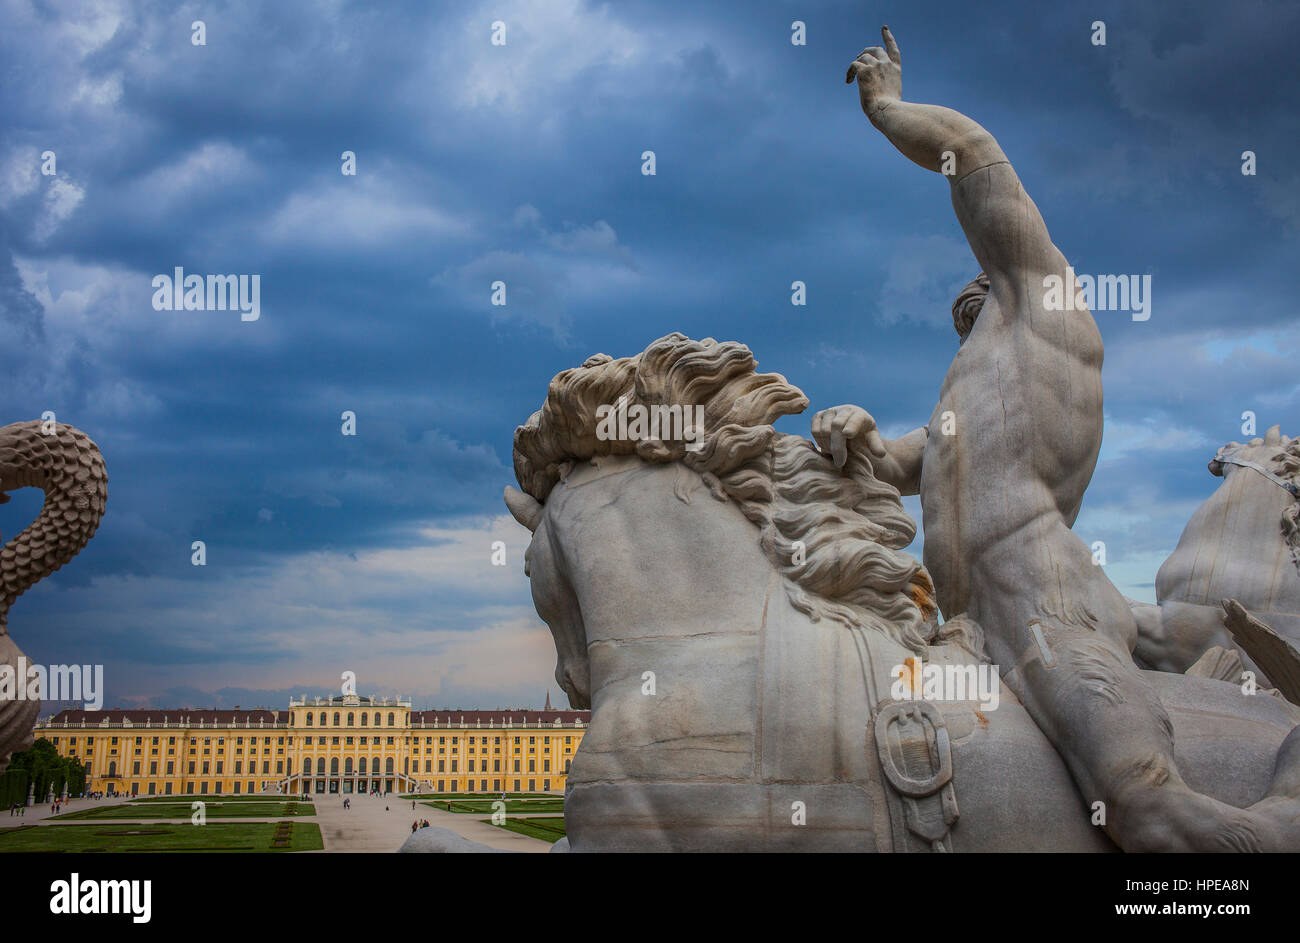 Schönbrunn Palace and gardens from Neptune fountain, Vienna, Austria, Europe - Stock Image